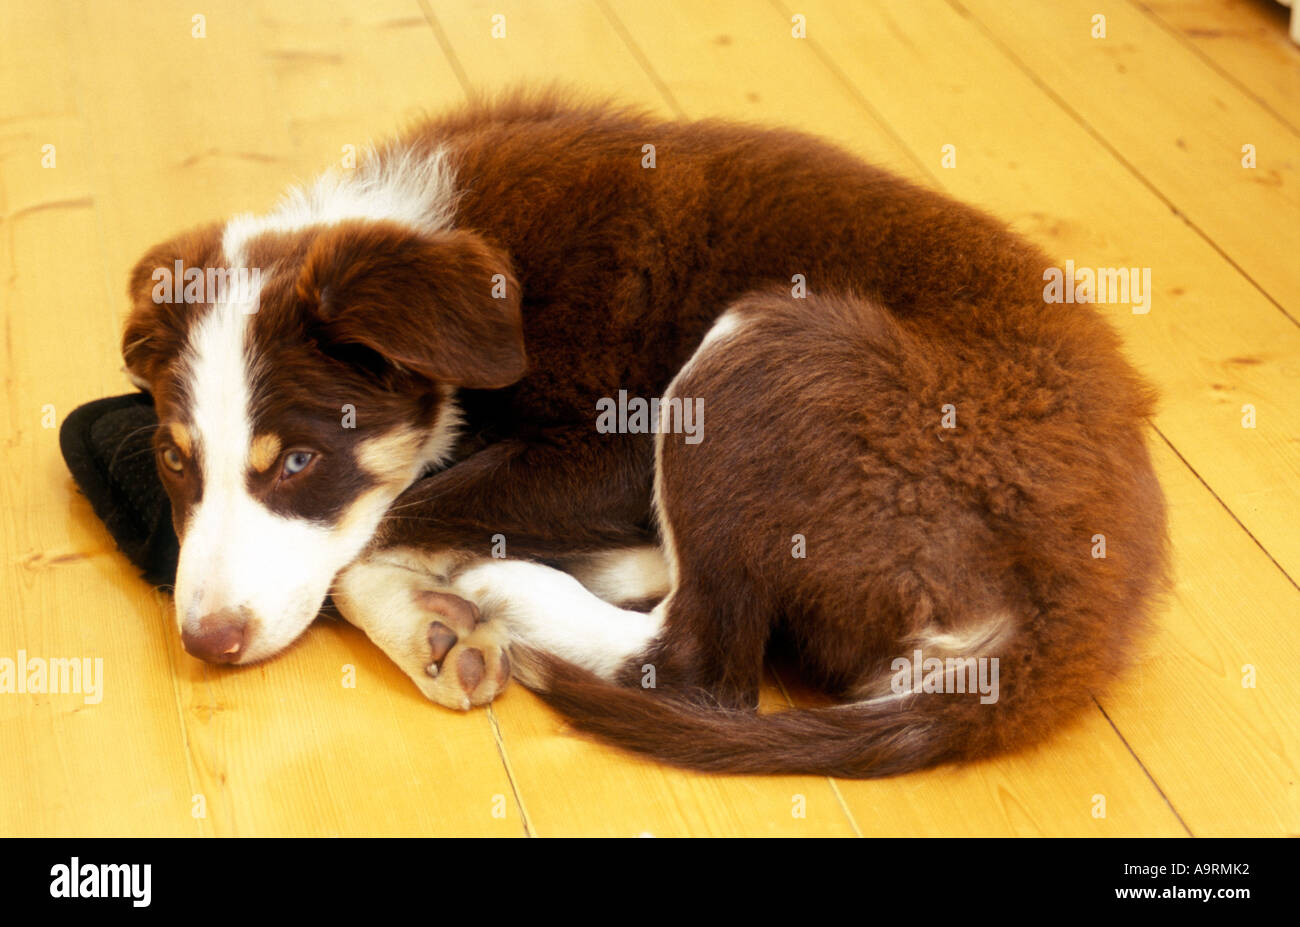 Brown Tri Colour Border Collie Puppy Dog Curled Up On Mat Stock